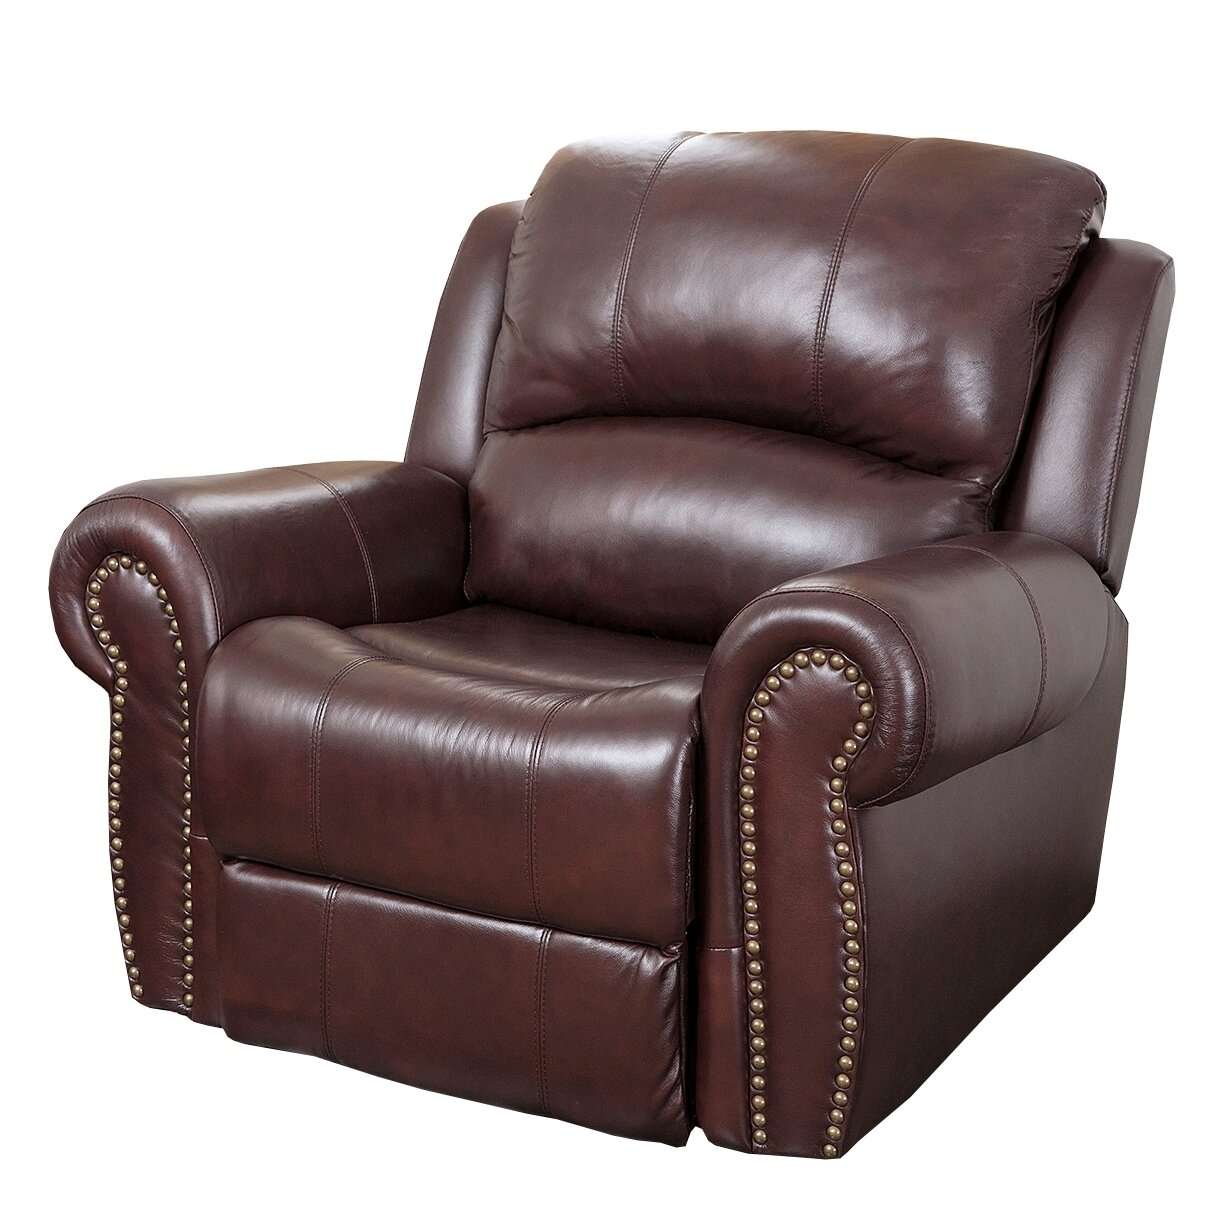 abbyson living sedona leather chaise recliner reviews